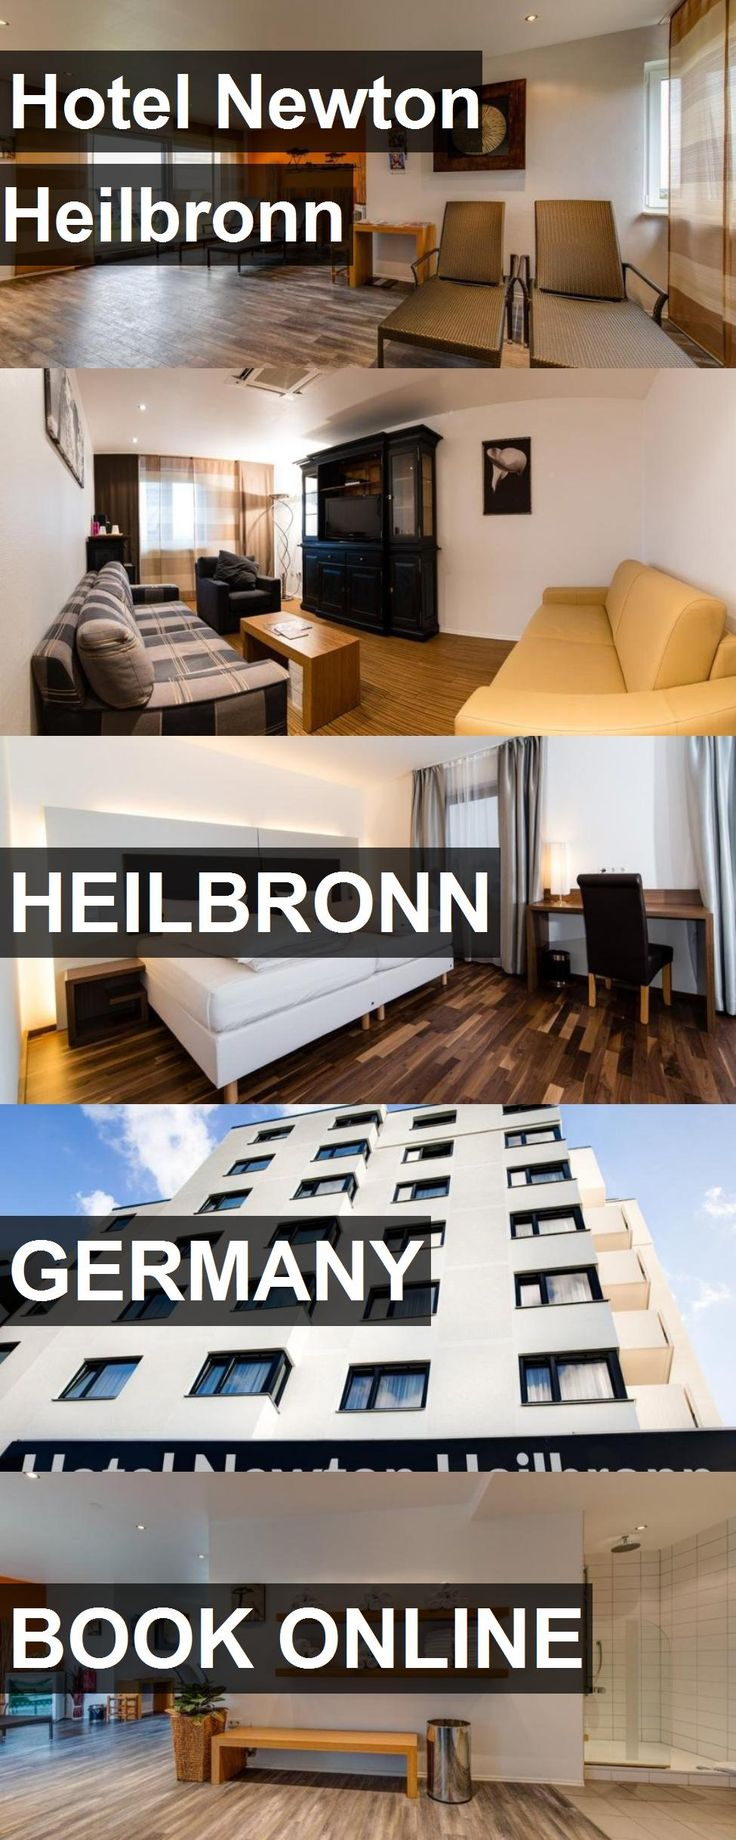 Hotel Newton Heilbronn in Heilbronn, Germany. For more information, photos, reviews and best prices please follow the link. #Germany #Heilbronn #travel #vacation #hotel